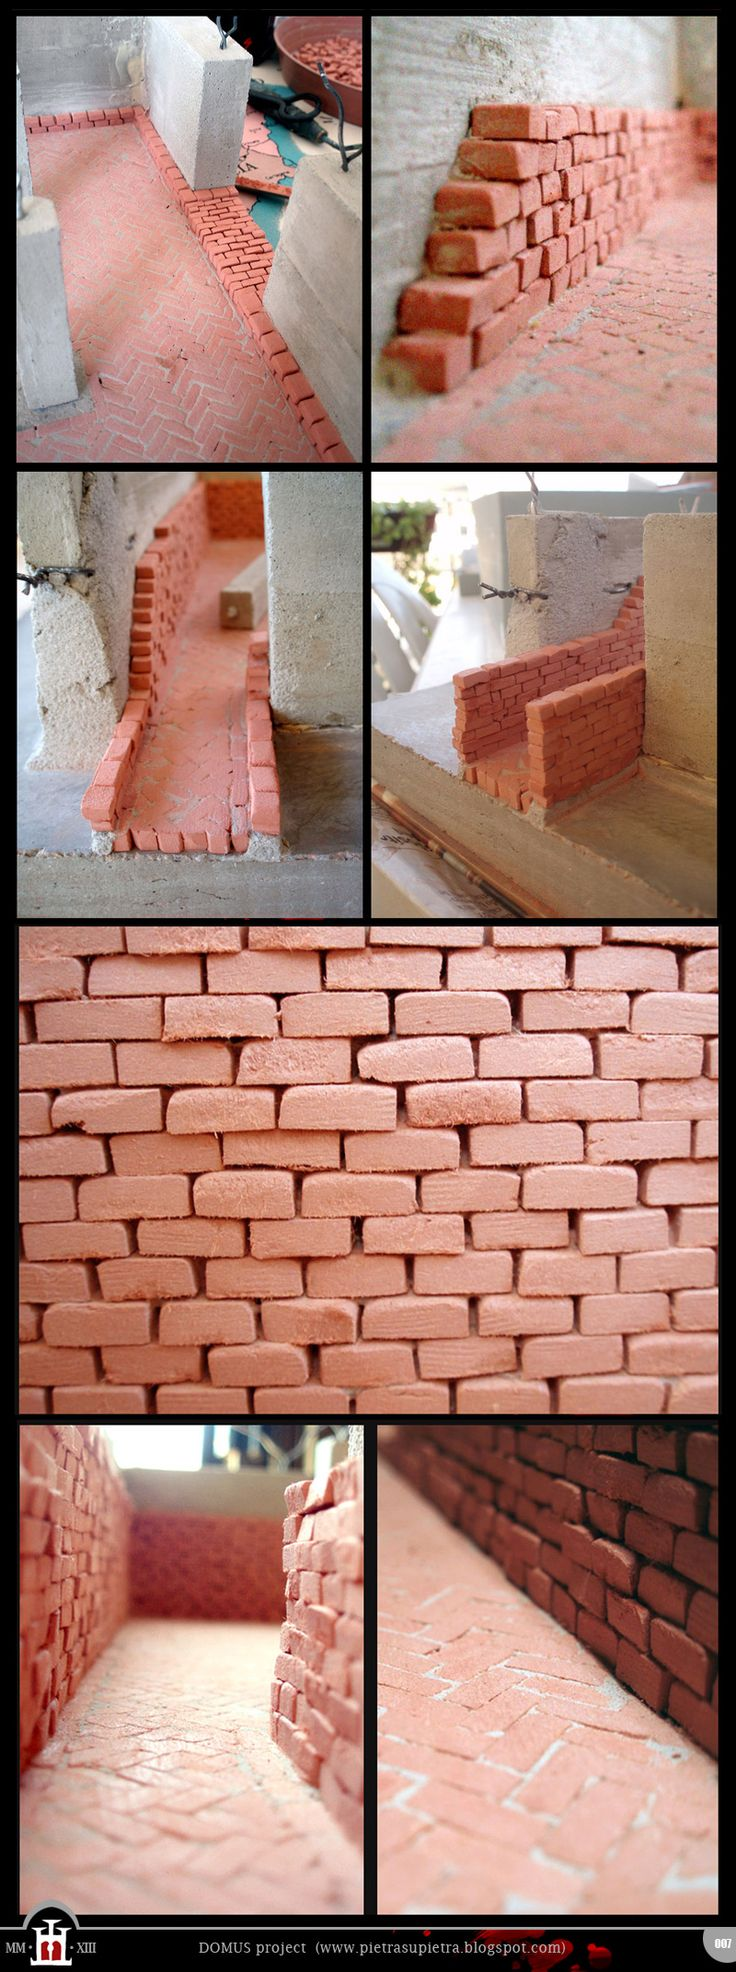 Domus project 7: Brick walls (part I) http://pietrasupietra.blogspot.com/2011/12/construction-07-brick-walls-1.html The Domus project is the construction in scale 1:50 of an imaginary medieval palace. It's made of clay, stones, slate, wood and other construction materials in the style of rich genoese buildings from the middle of XIV century.